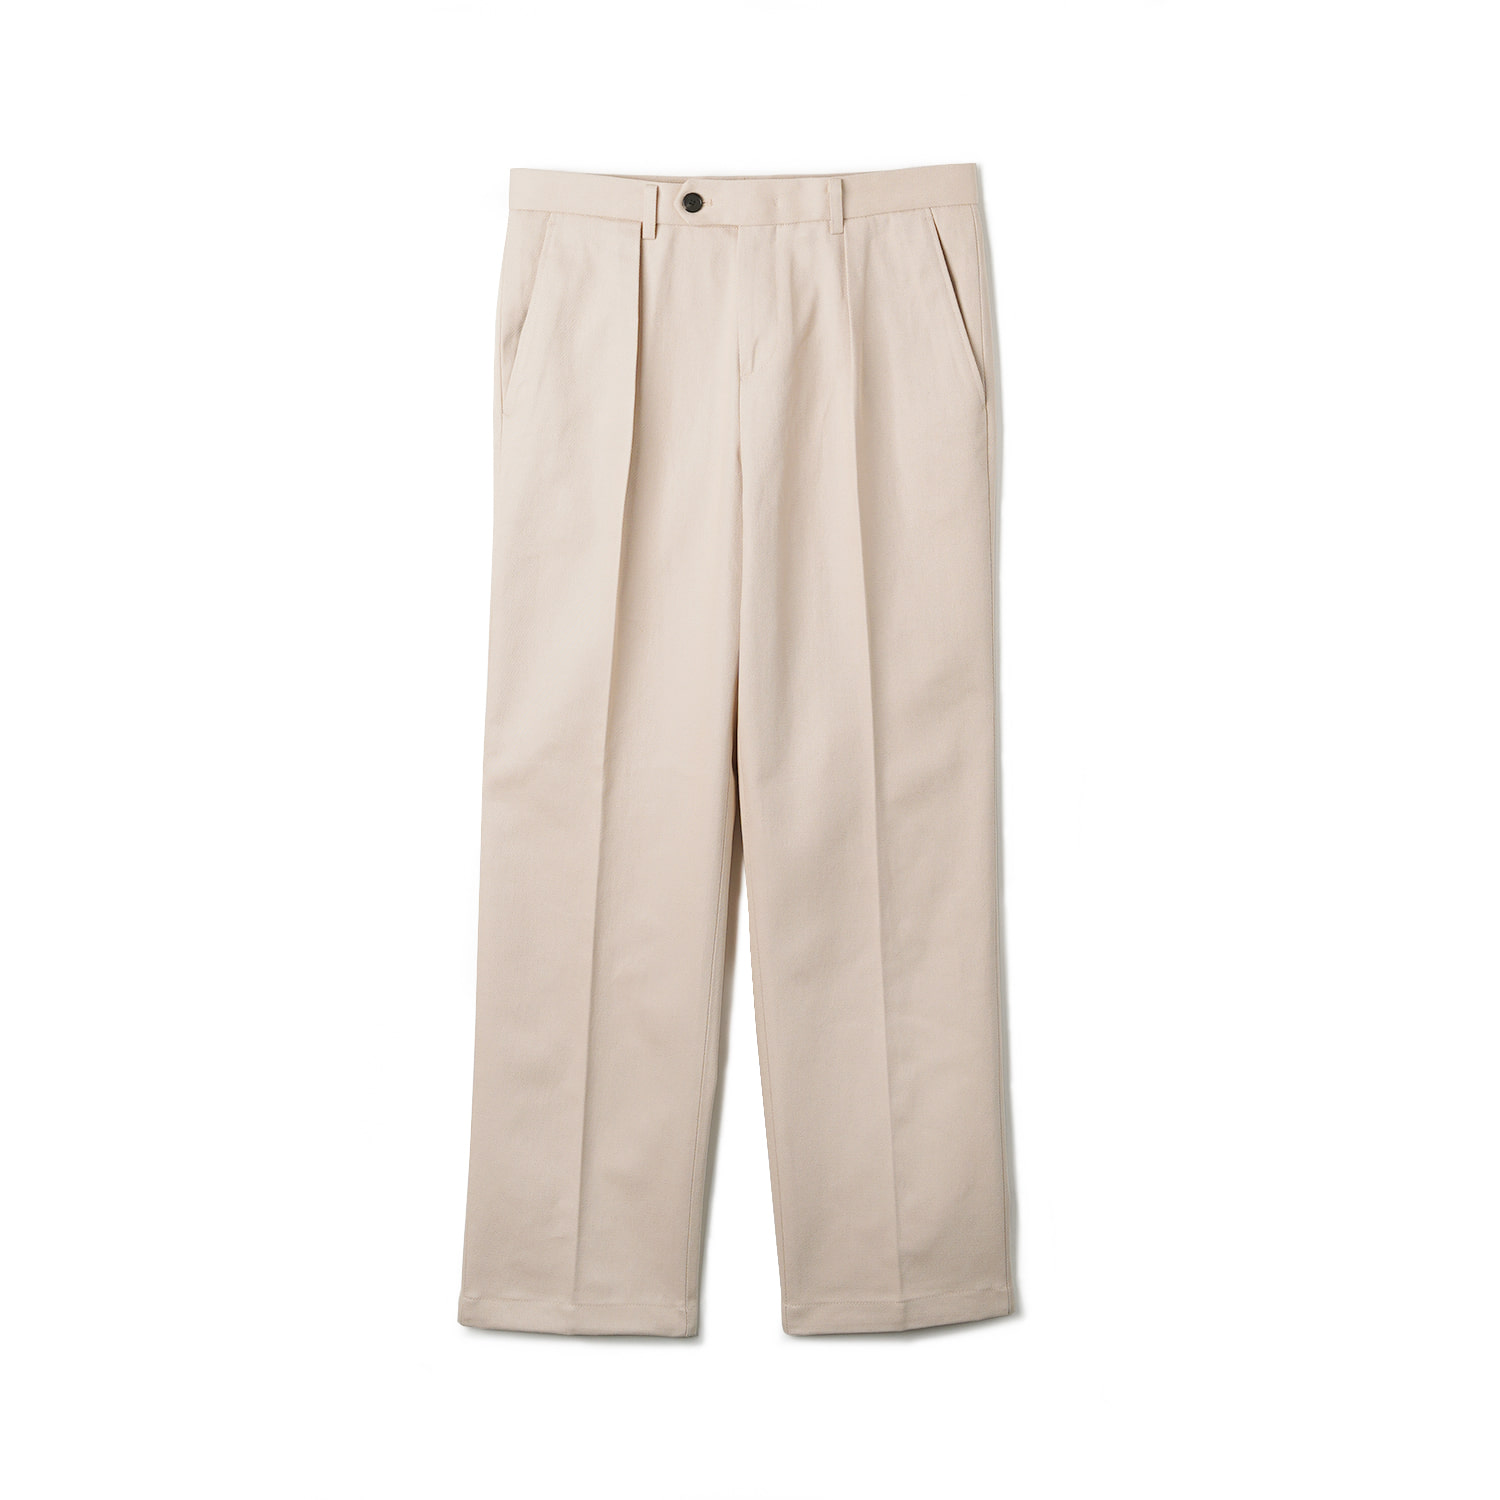 OPD Cotton One-Tuck Pants - IvoryBANTS(반츠)